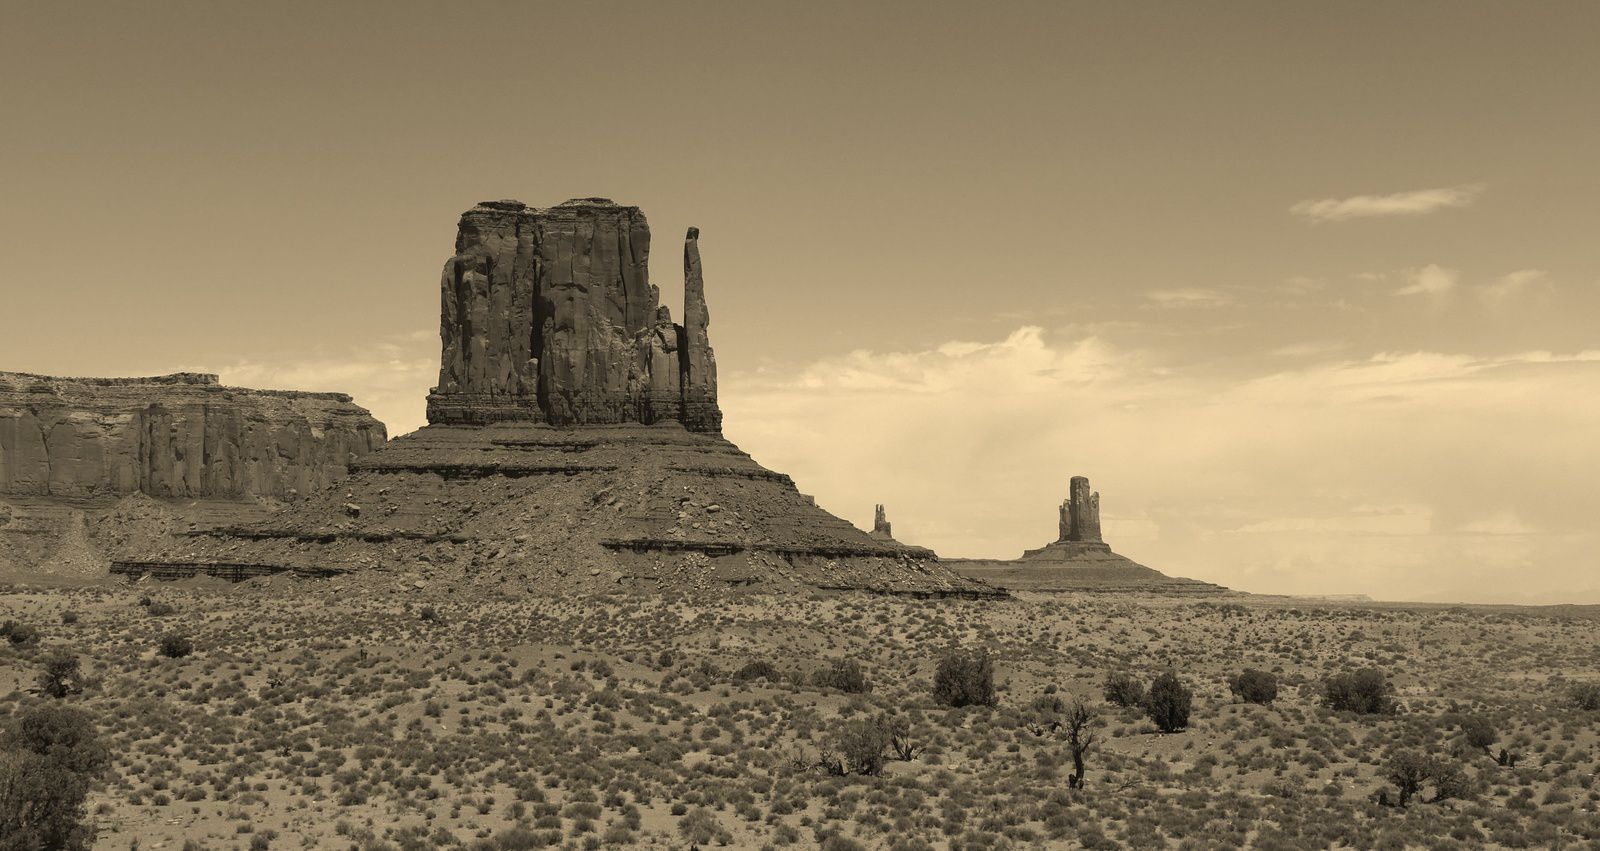 Monument valley, Arizona/Utha , USA, by Chry